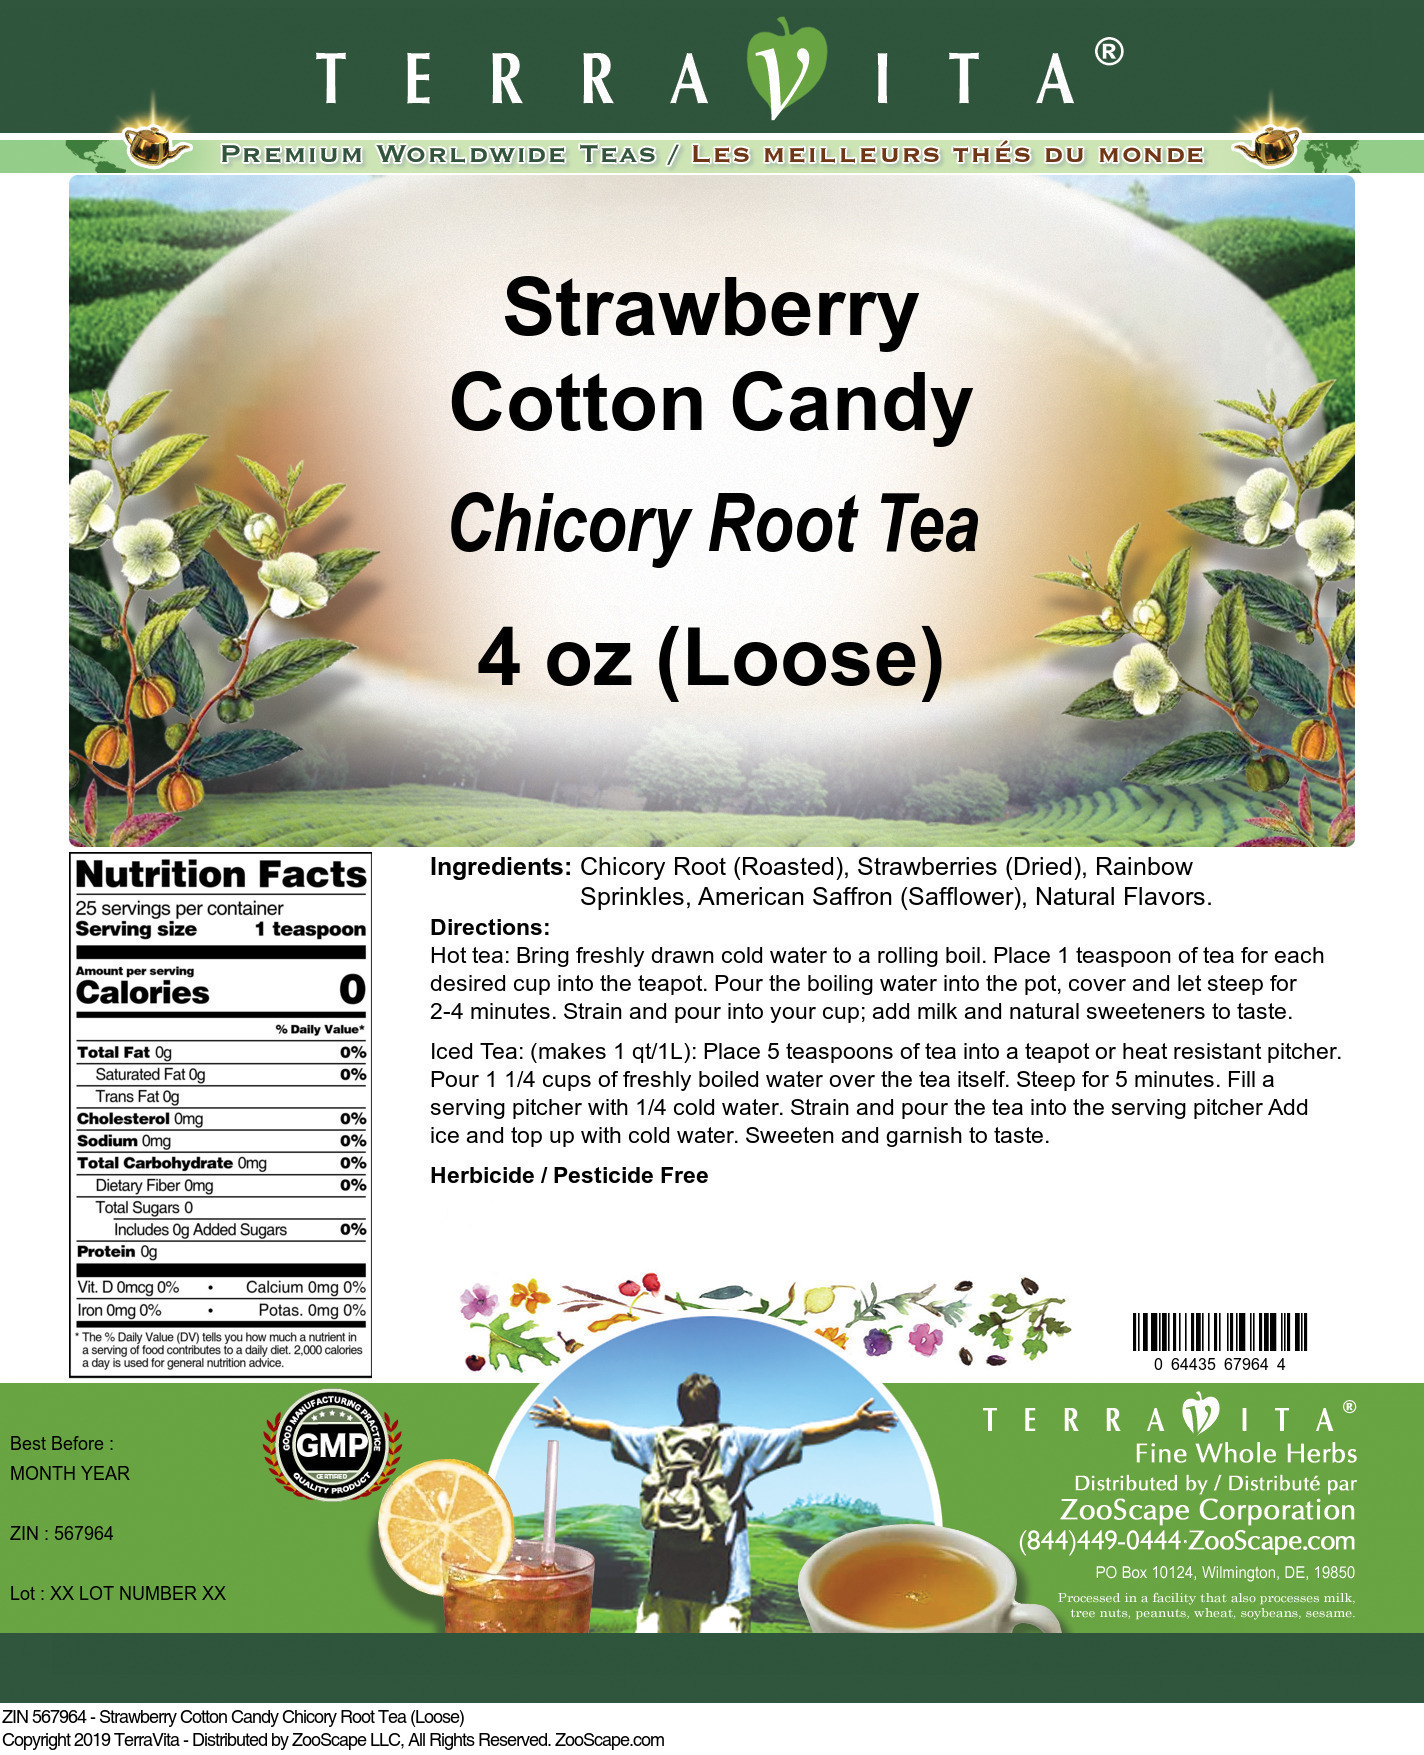 Strawberry Cotton Candy Chicory Root